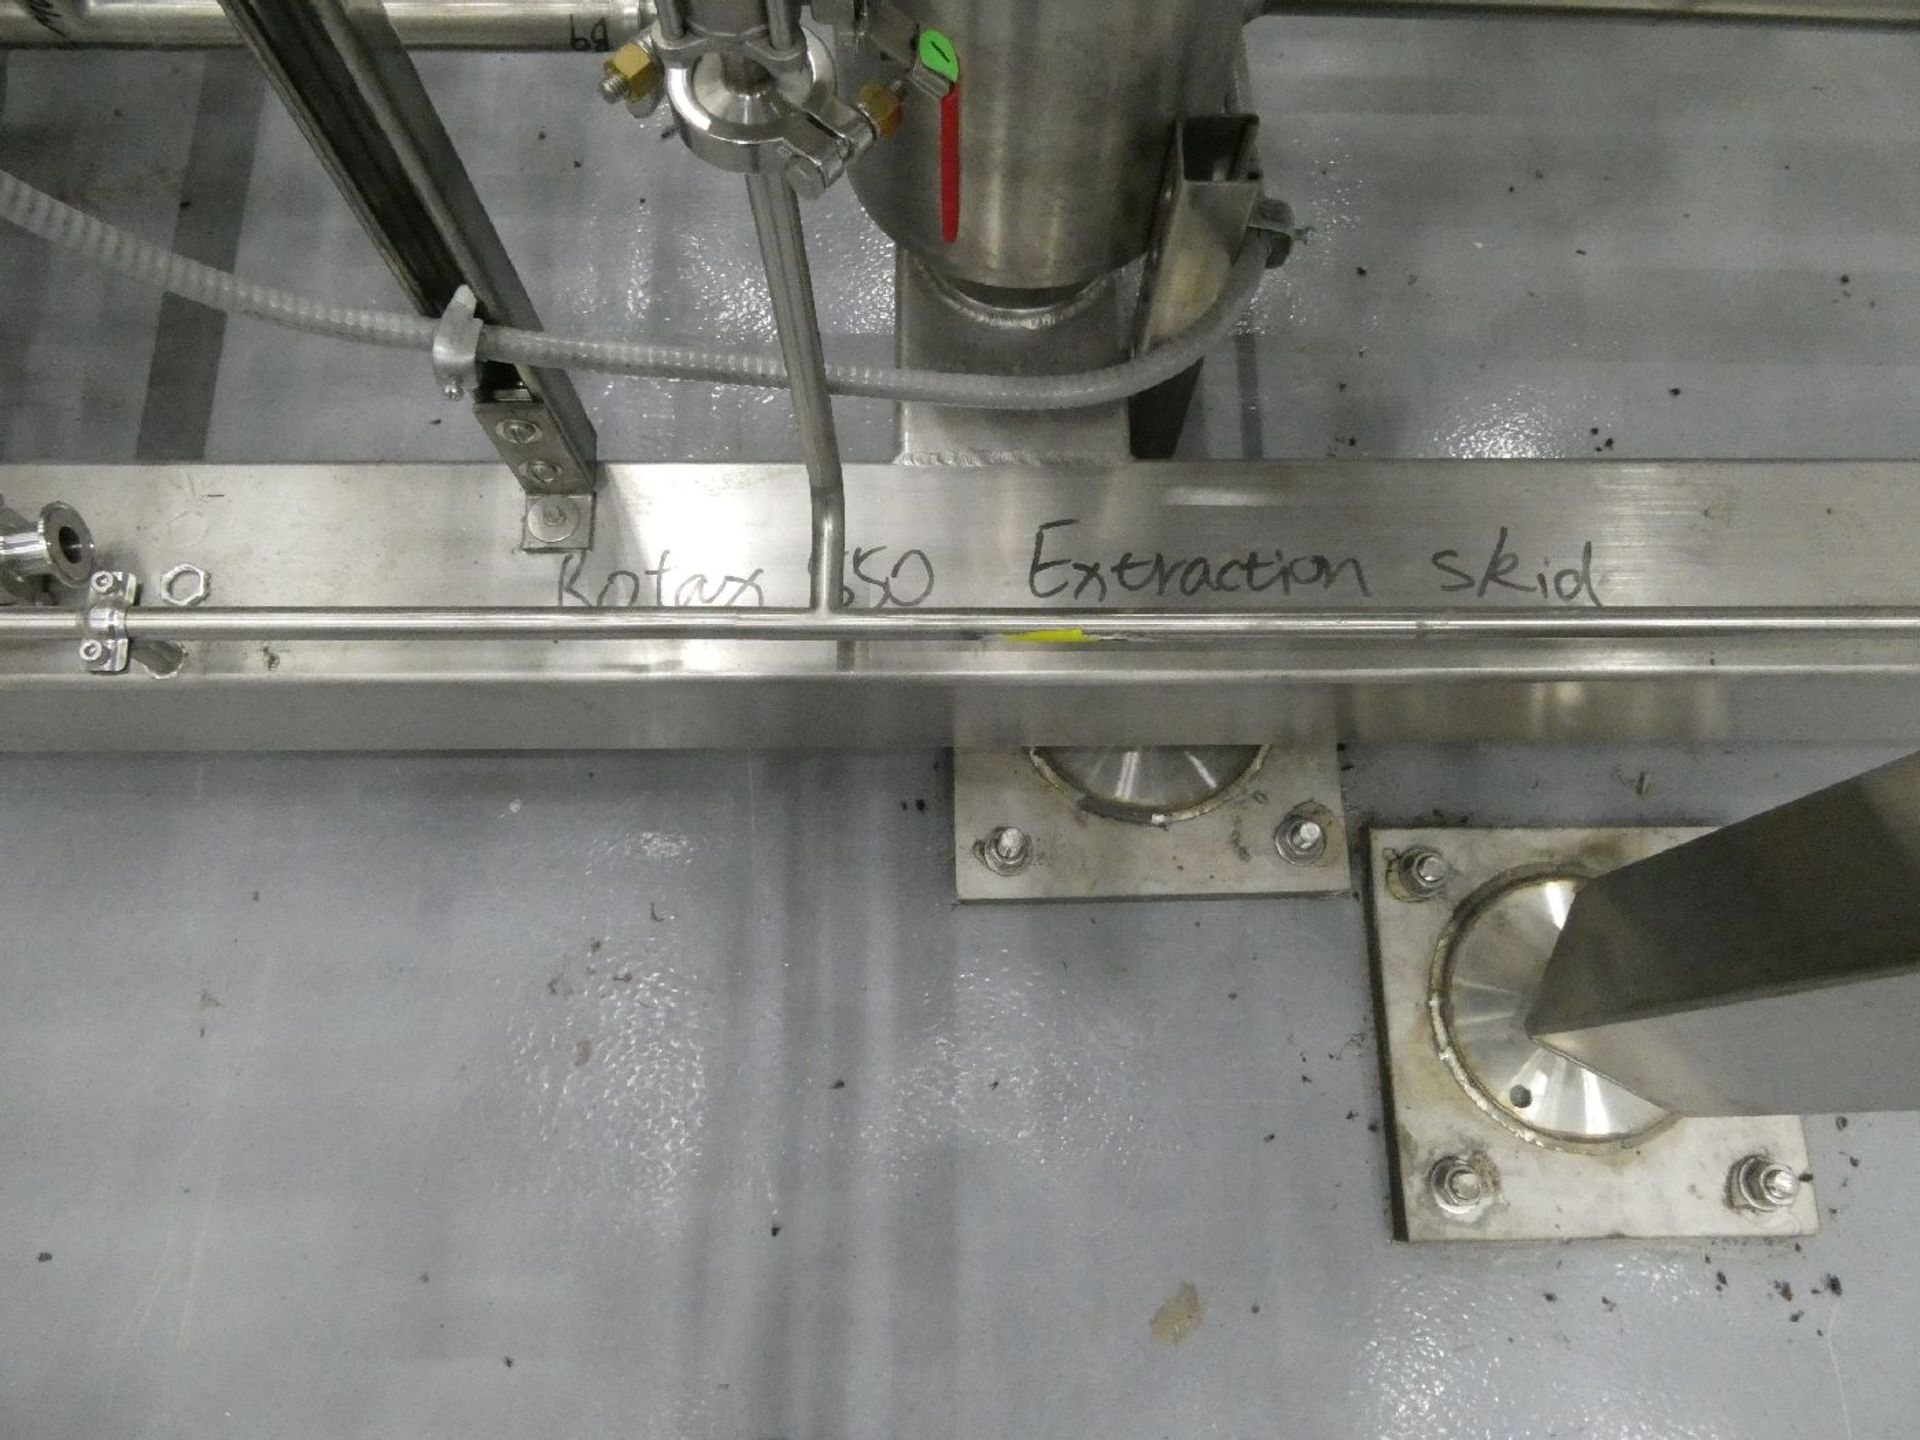 ROTAX Closed Loop Solvent Based Continuous Oil Extraction System - Image 11 of 68